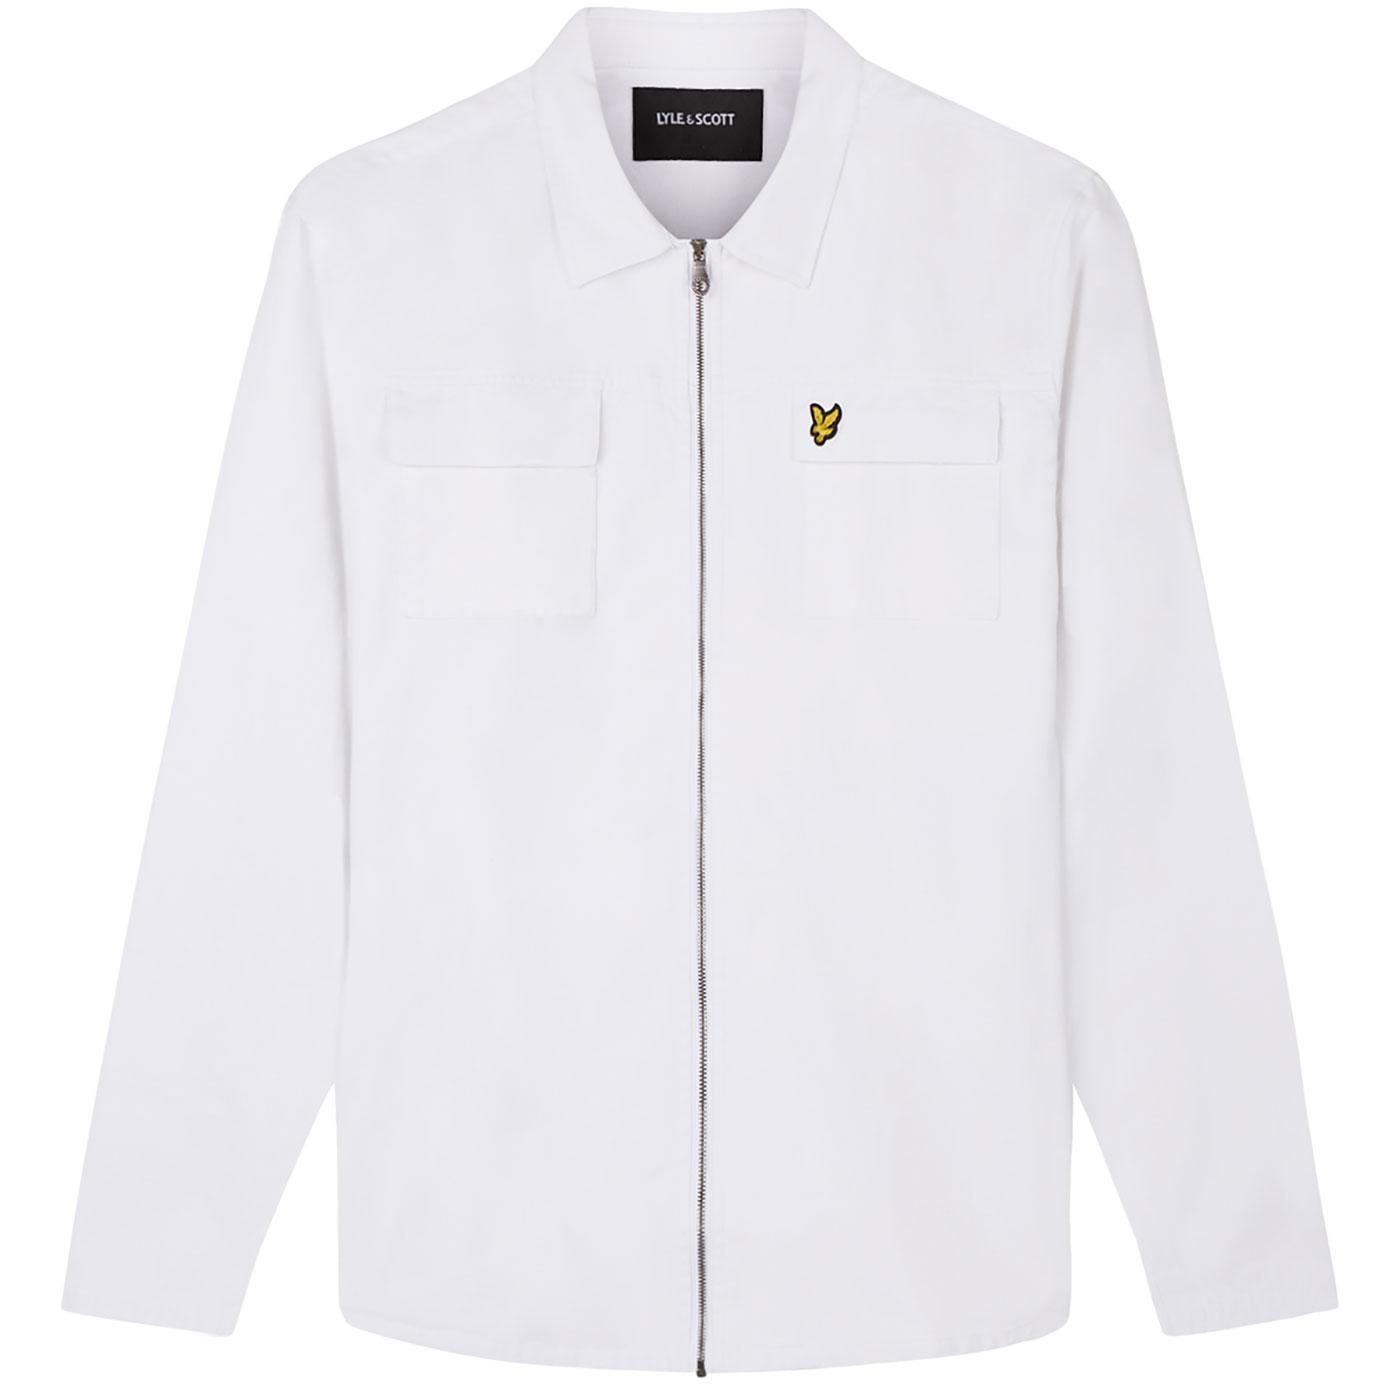 LYLE & SCOTT Retro Mod Denim Summer Overshirt (W)